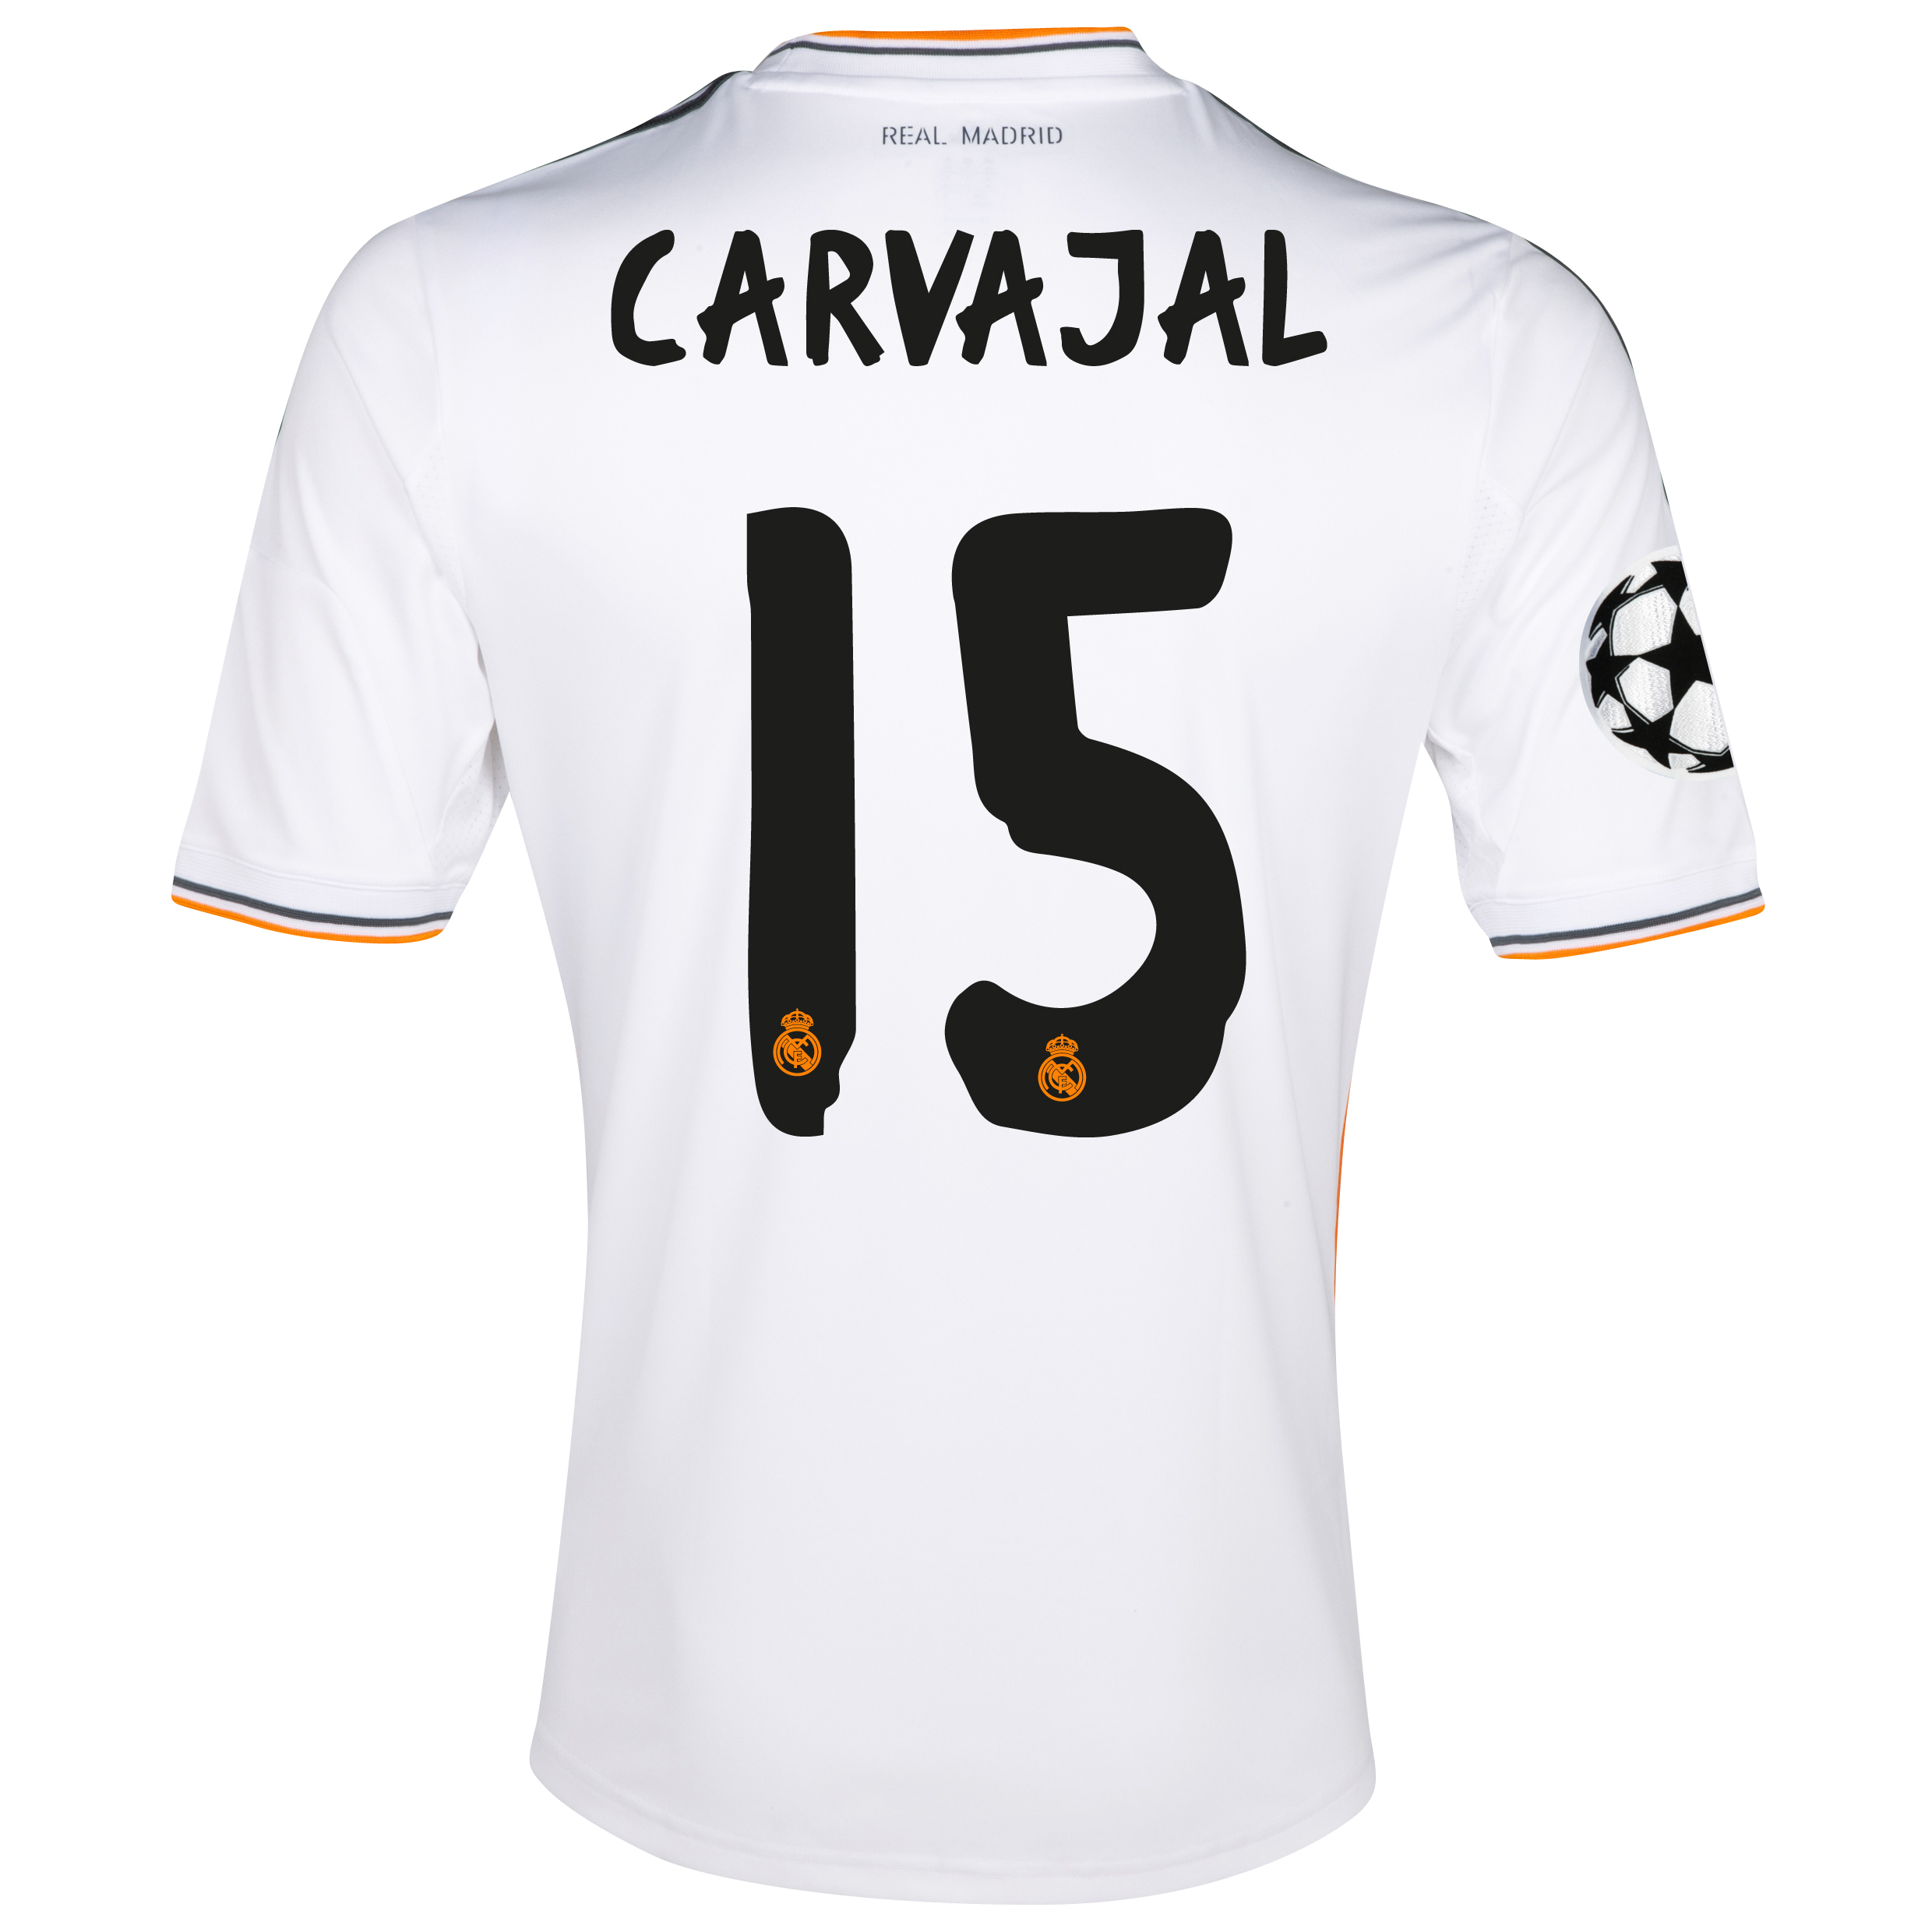 Real Madrid UEFA Champions League Home Shirt 2013/14 with Carvajal 15 printing